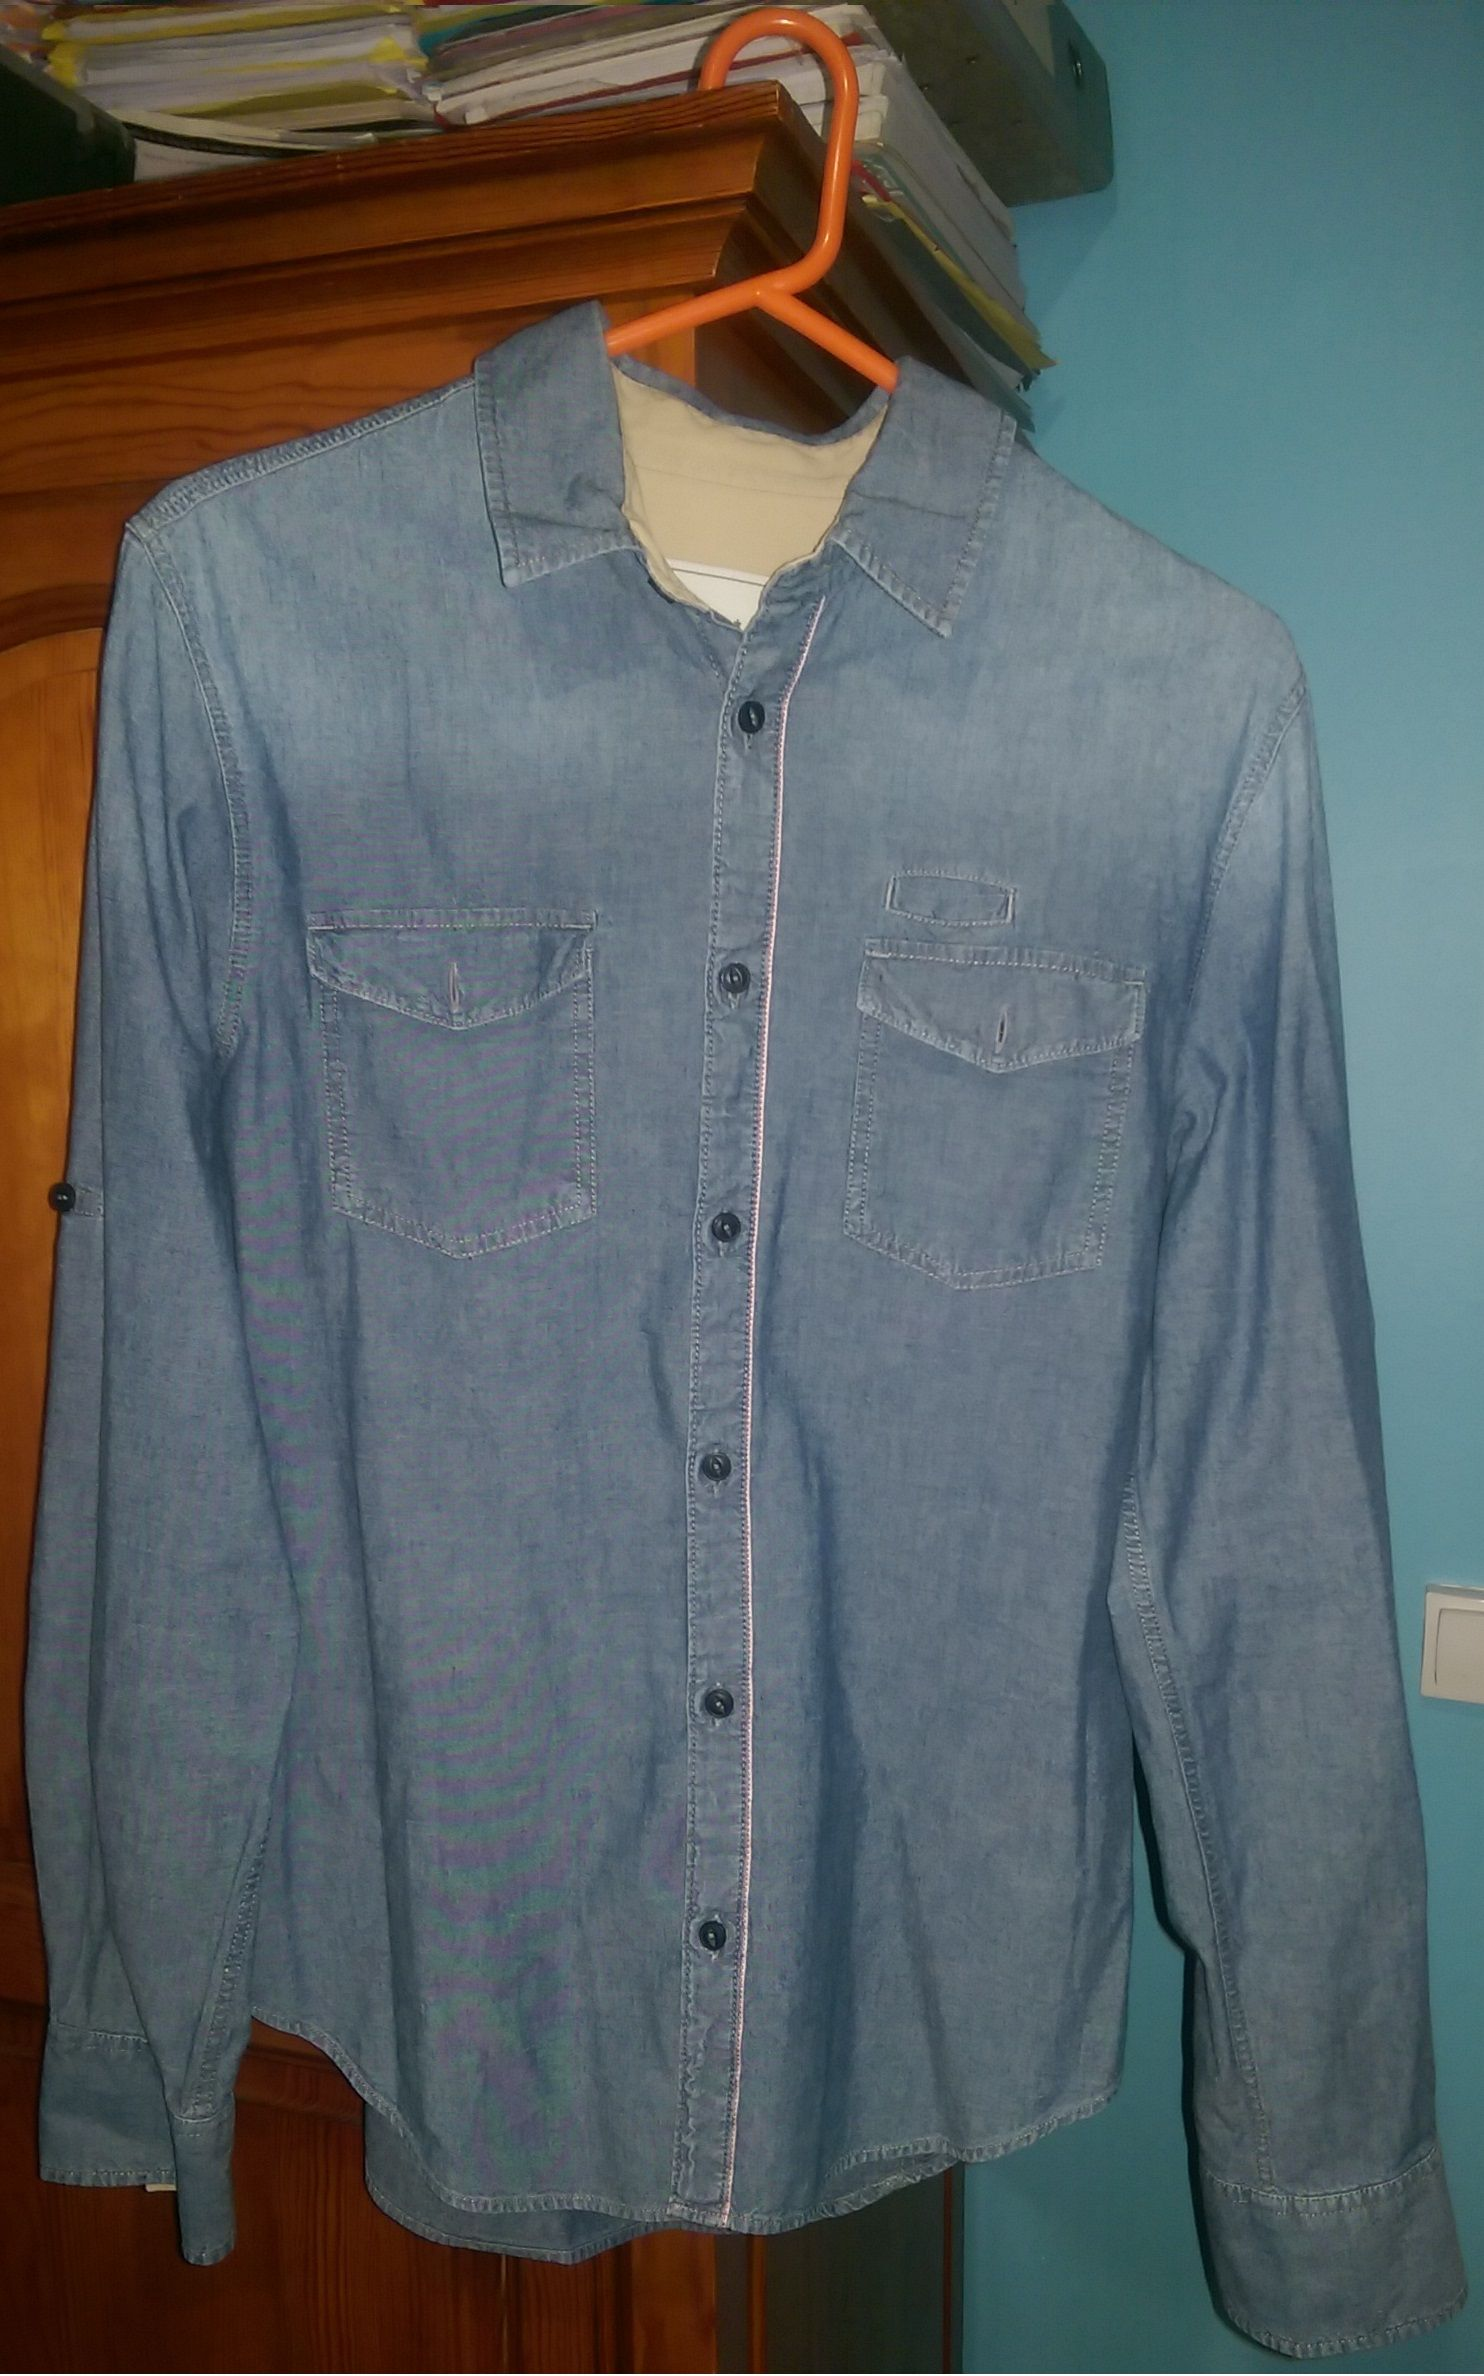 Chemise bleu jean CELIO (Relax Collection) Taille M   Meh Discount ... 6fc16cc7a93f